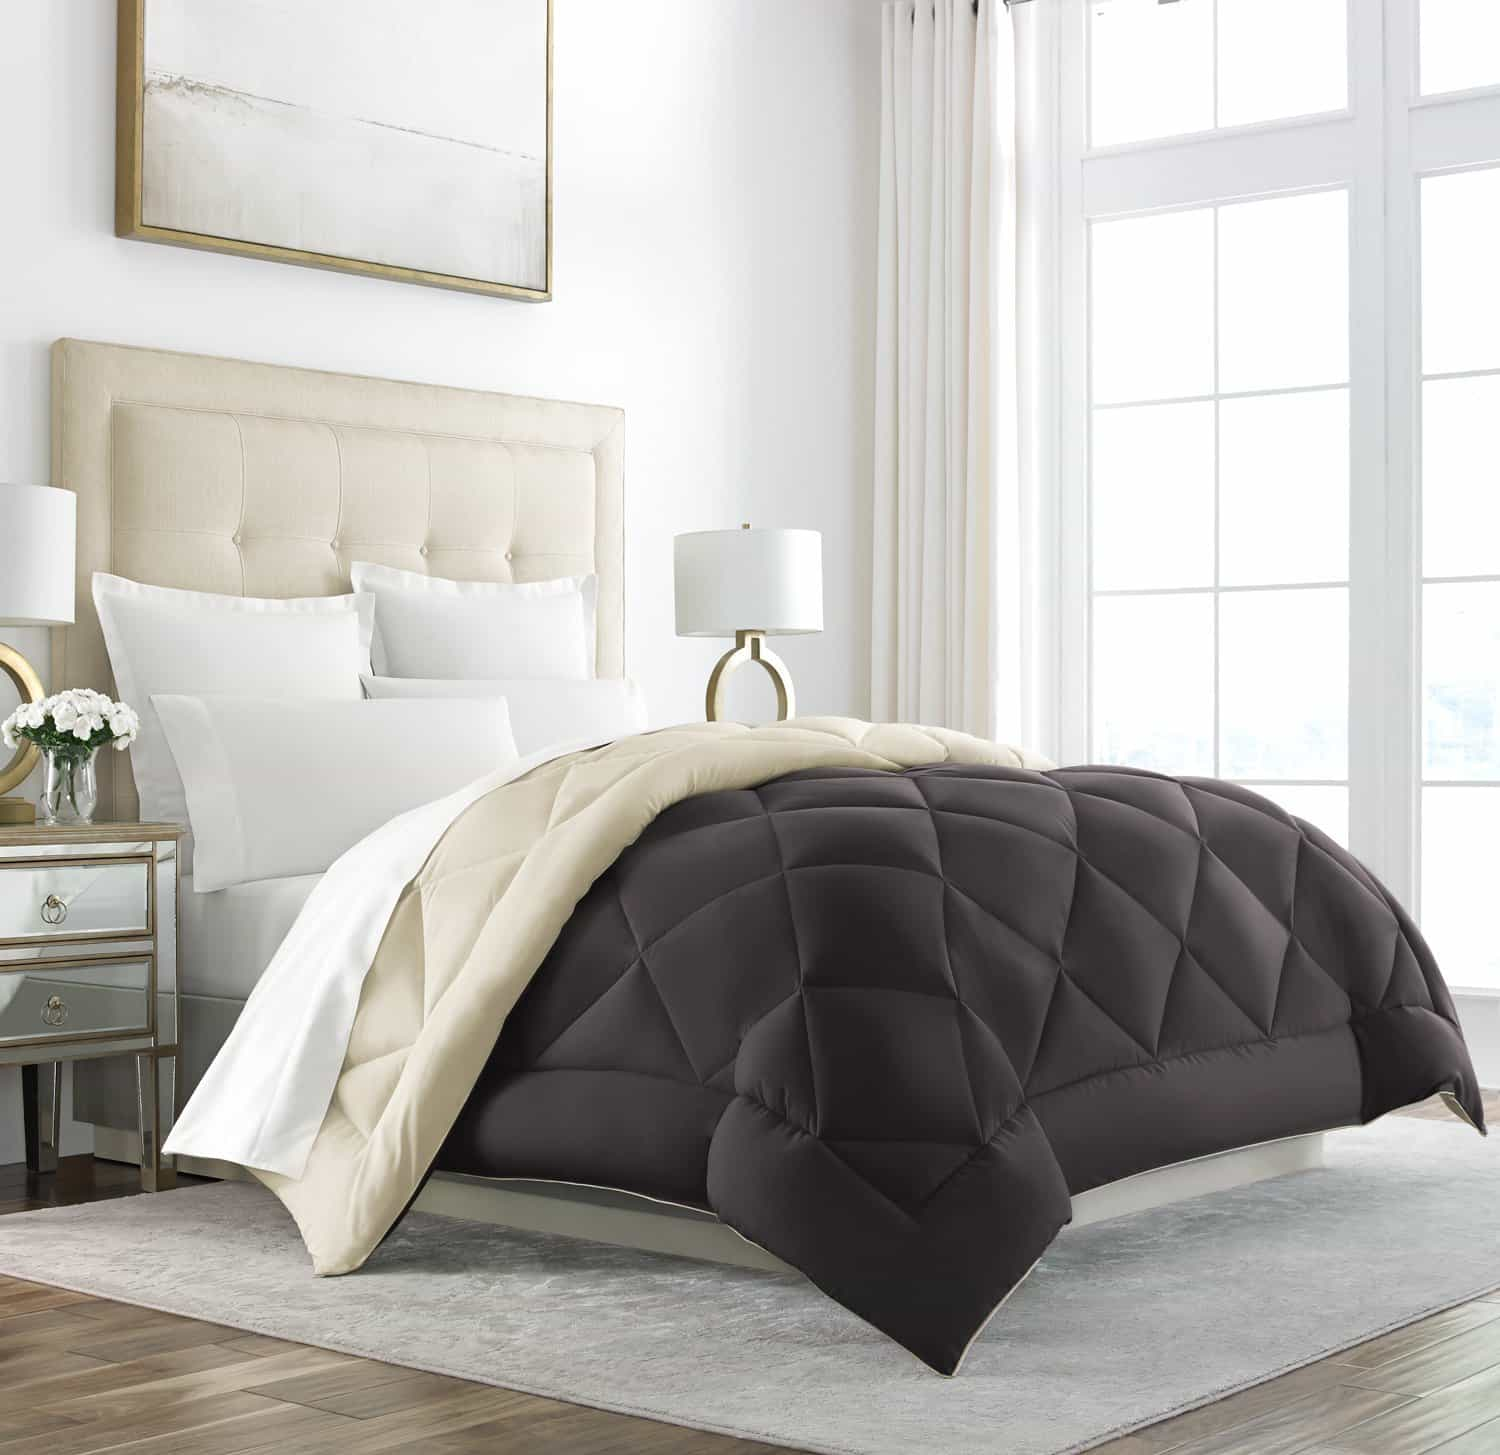 3 Best Rated Luxury Comforter Sets Available On Amazon